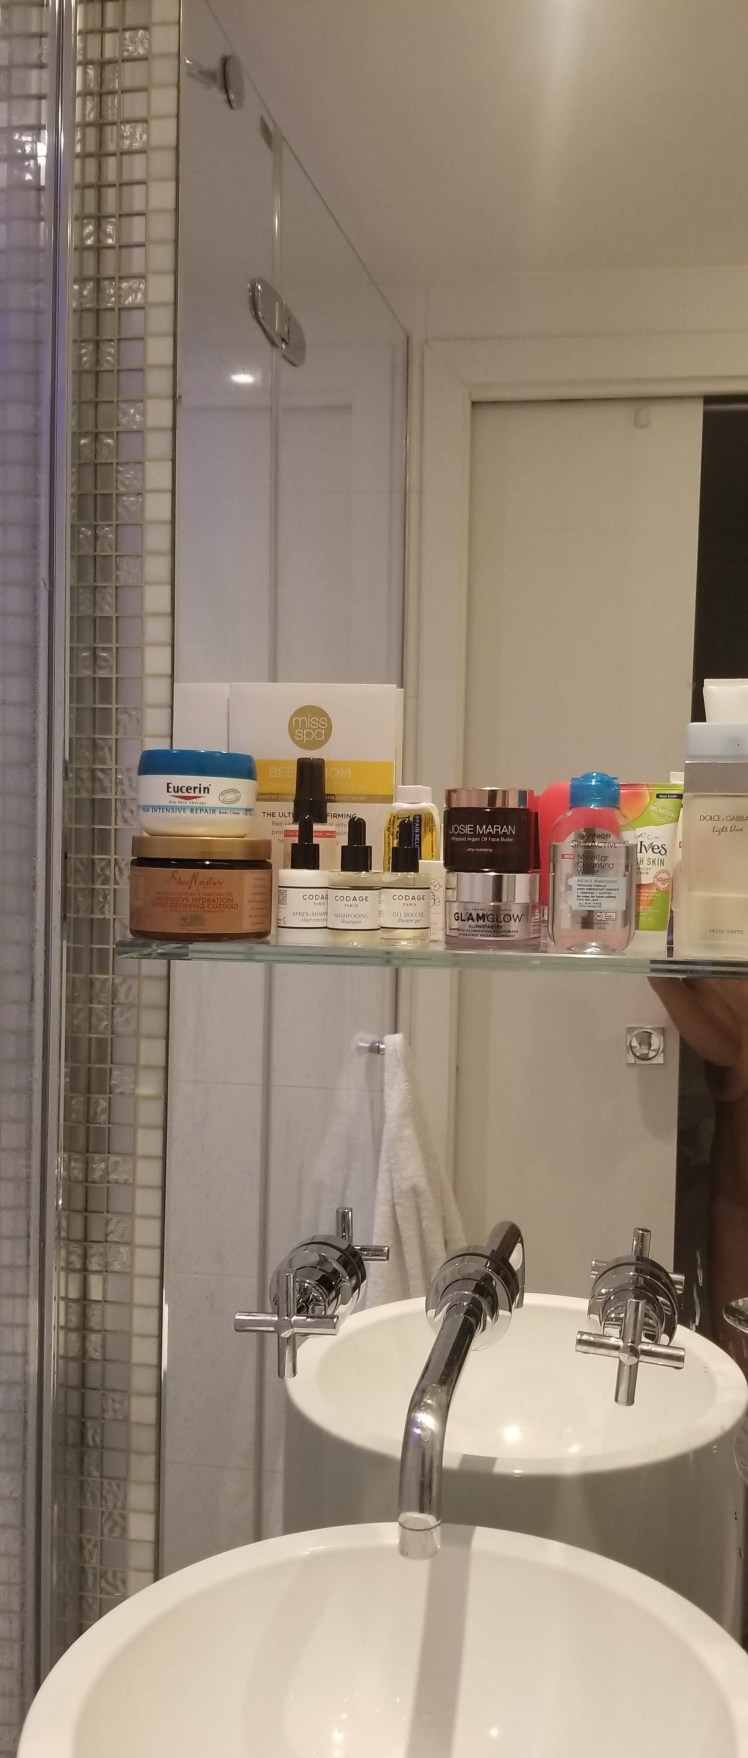 Beauty Products in bathroom Paris May 2019